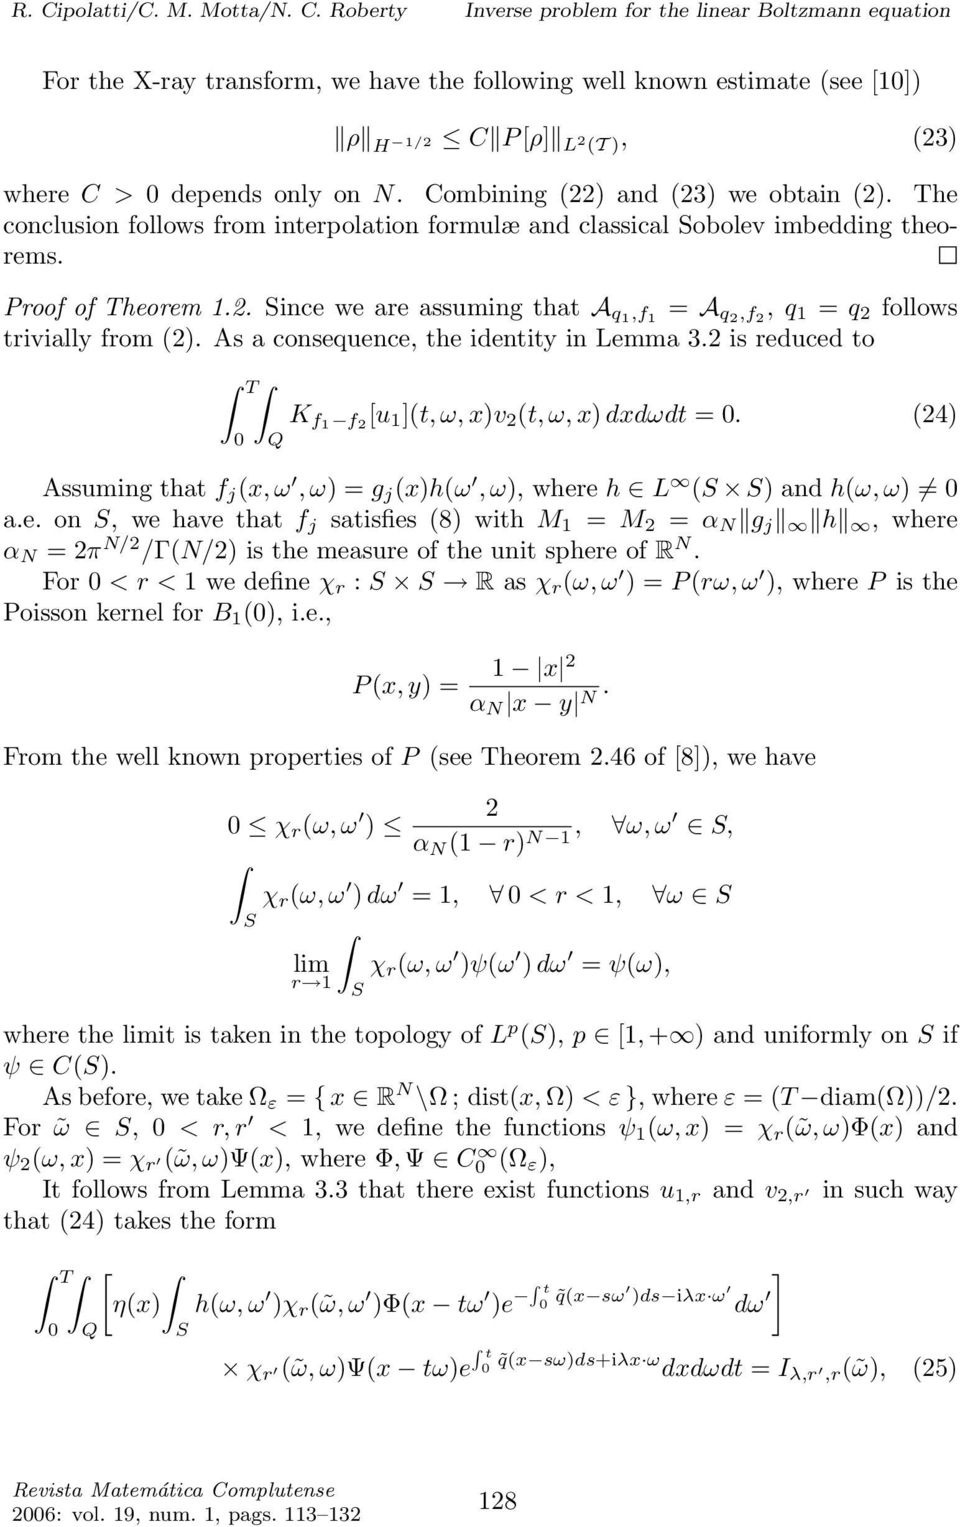 As a consequence, the identity in Lemma 3.2 is reduced to T K f1 f 2 [u 1 ](t, ω, x)v 2 (t, ω, x) dxdωdt =. (24) Assuming that f j (x, ω,ω)=g j (x)h(ω,ω), where h L (S S) andh(ω, ω) a.e. on S, wehavethatf j satisfies (8) with M 1 = M 2 = α N g j h, where α N =2π N/2 /Γ(N/2) is the measure of the unit sphere of R N.